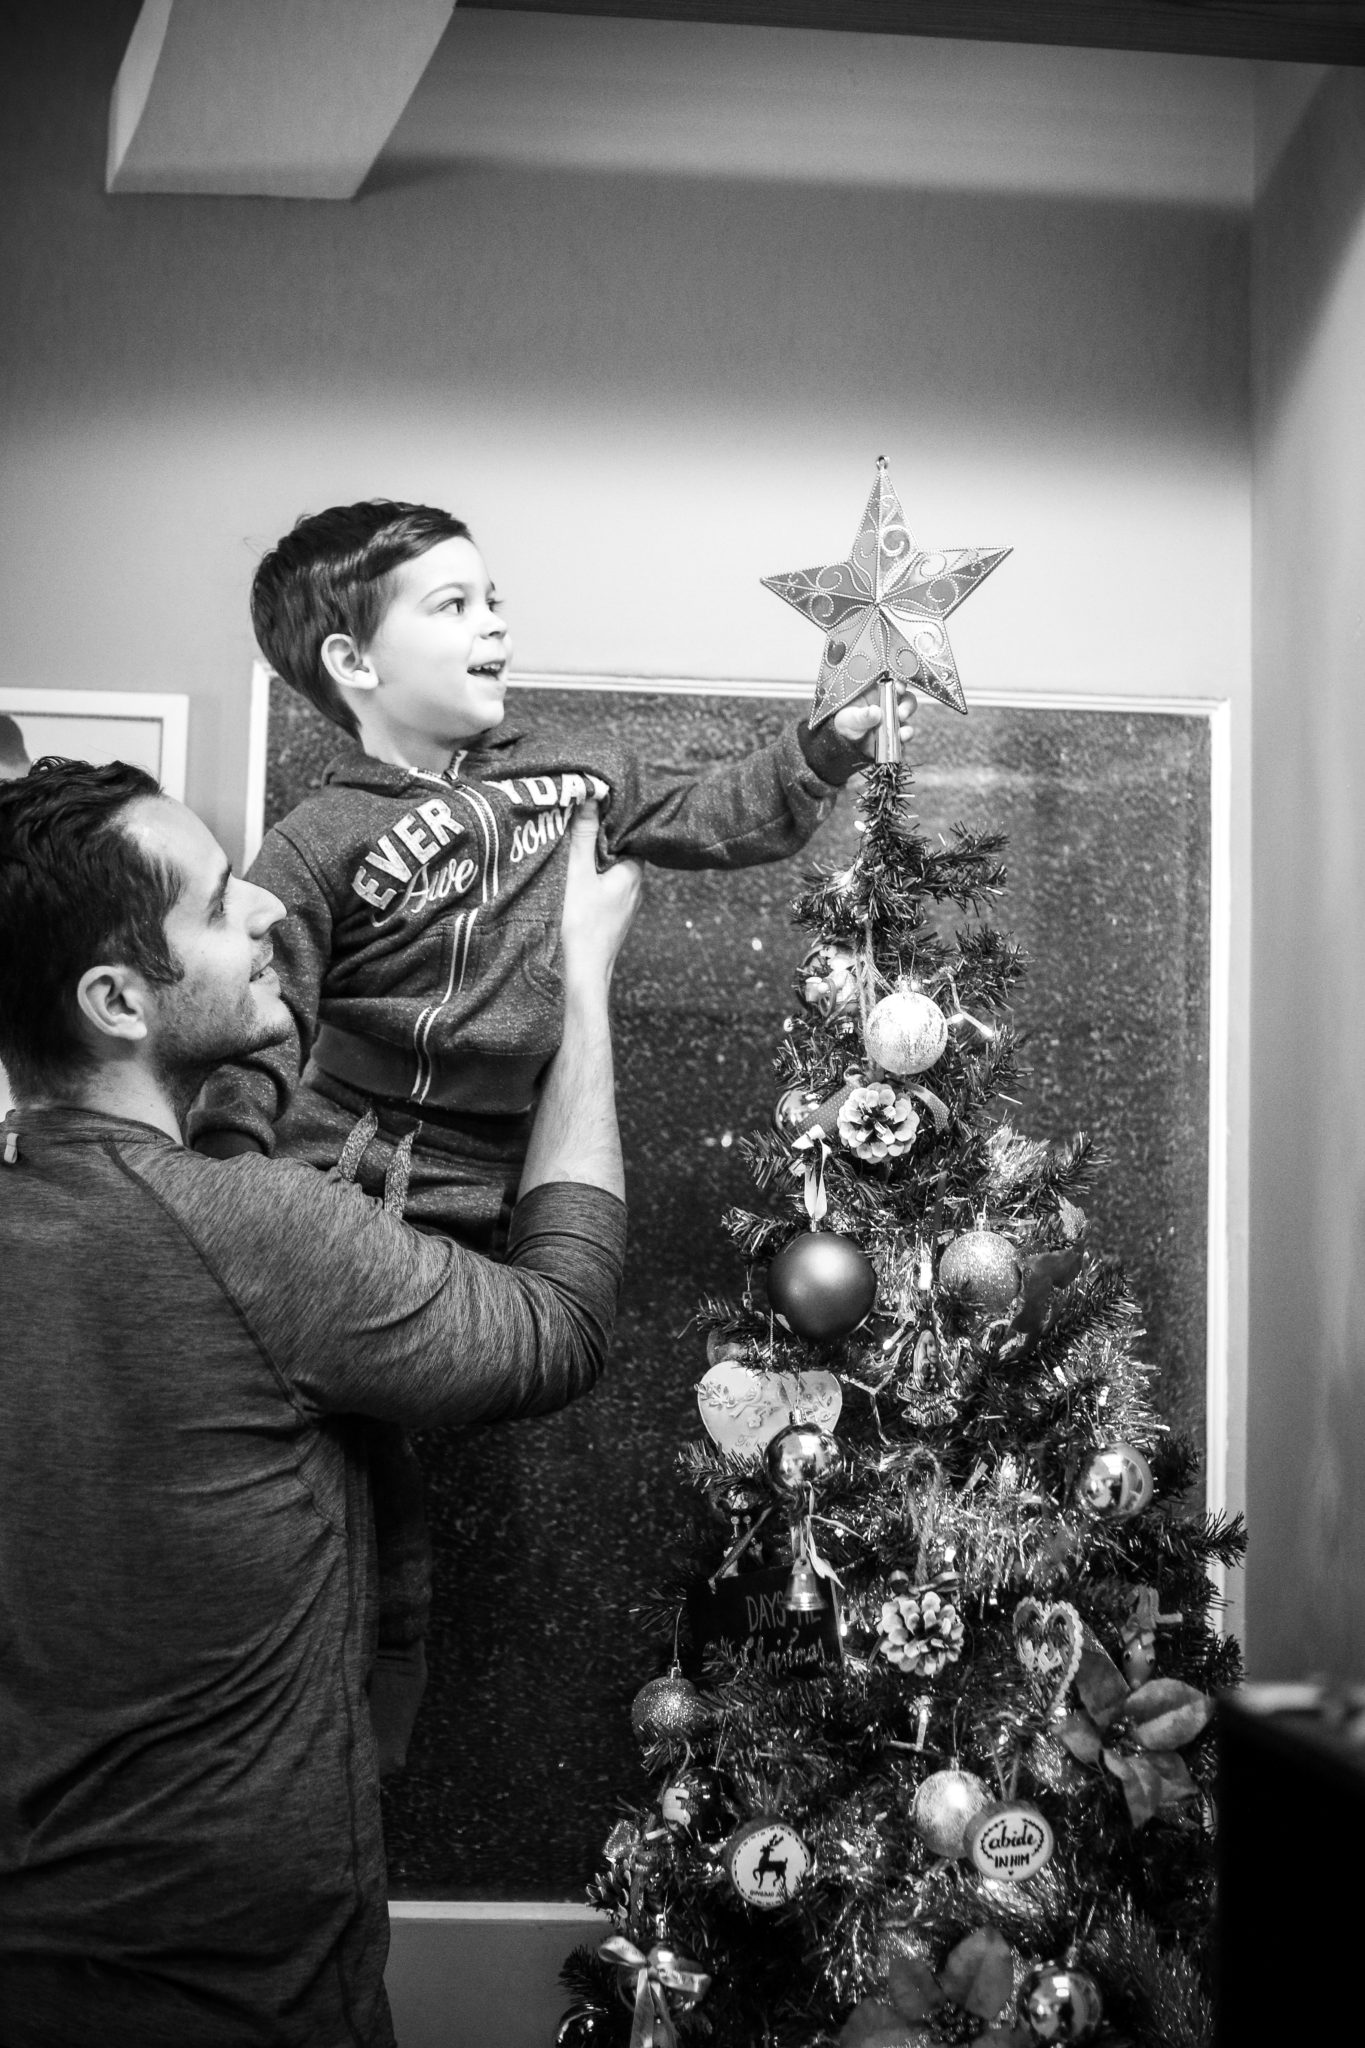 The Star is On the Tree